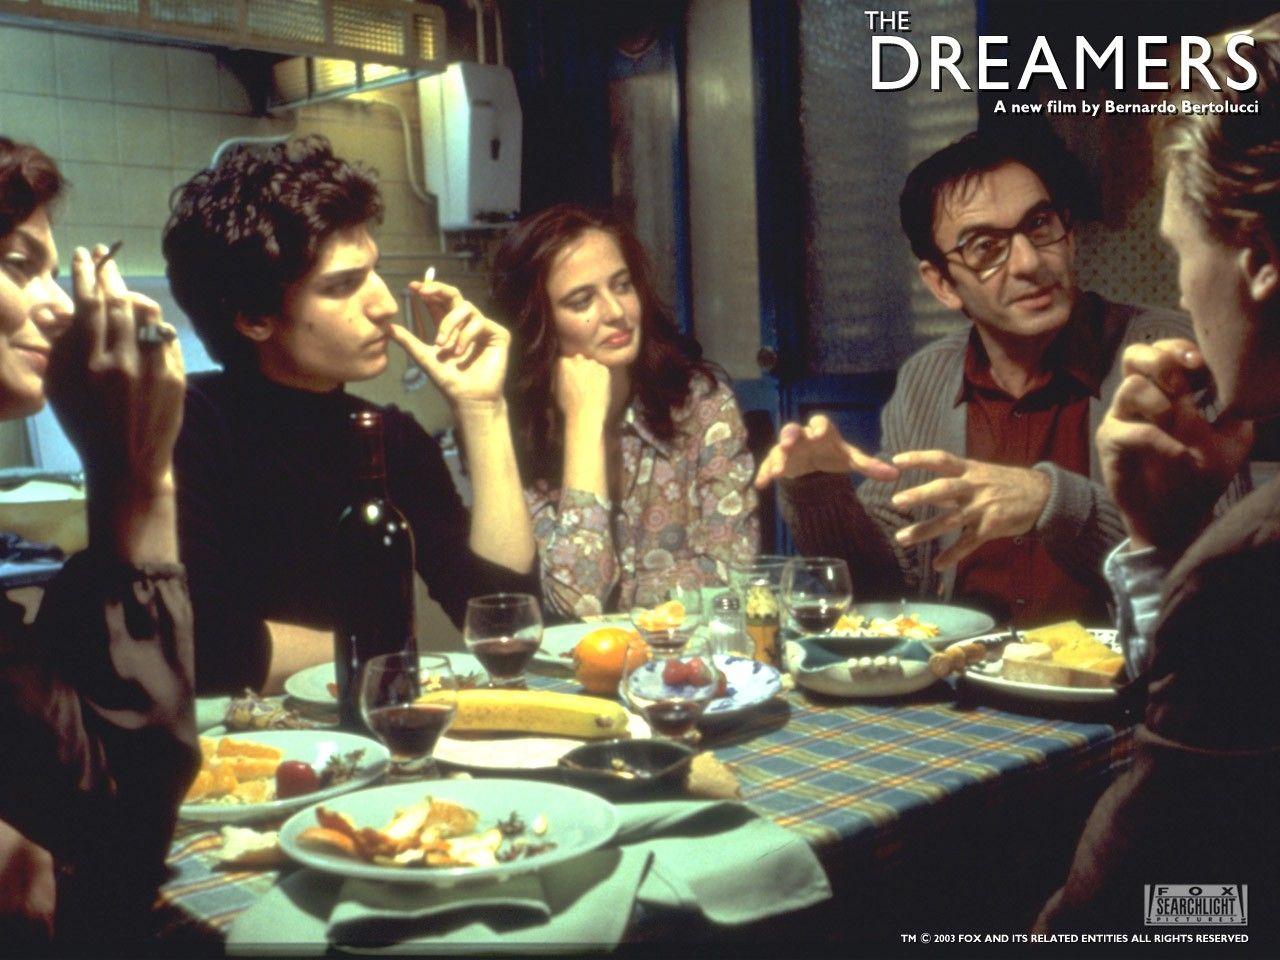 Wallpaper del film The dreamers - I sognatori